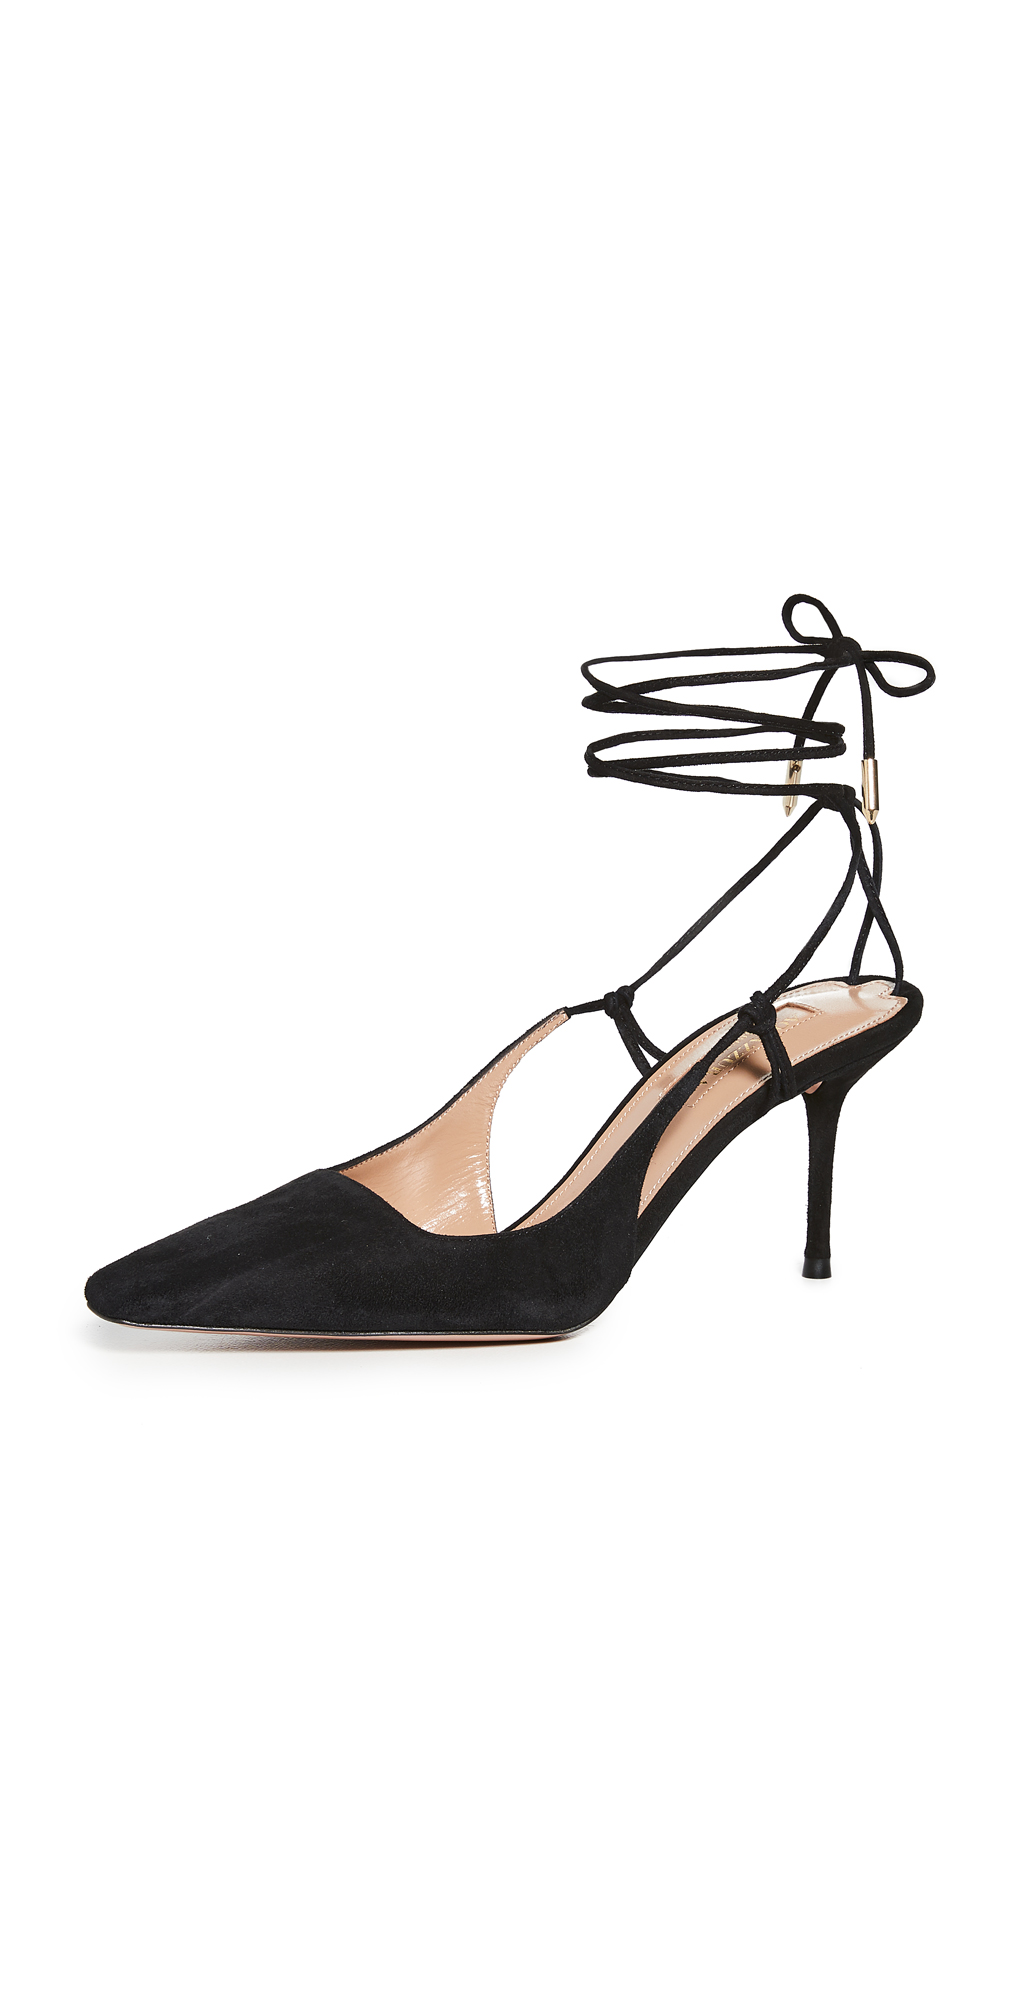 Aquazzura Ambra Pumps 75mm